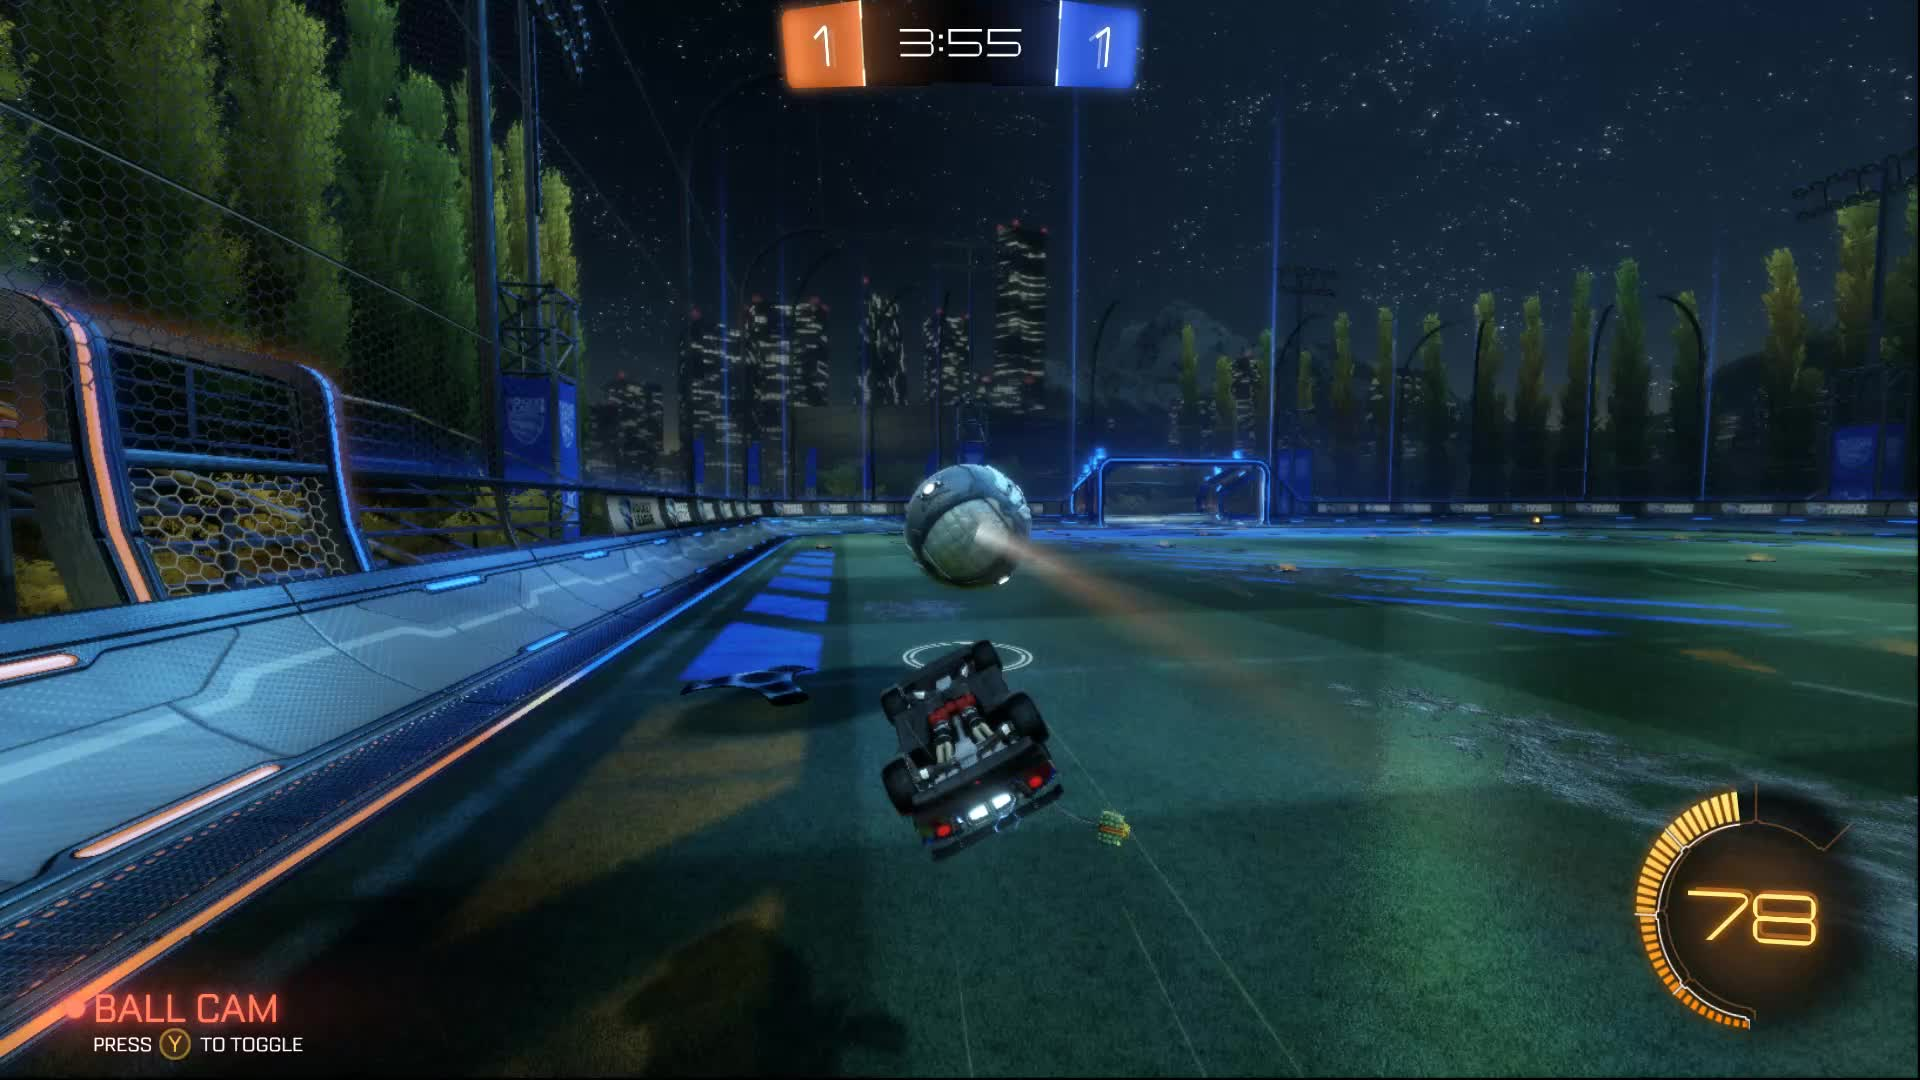 RocketLeague, double demolition rocket league GIFs